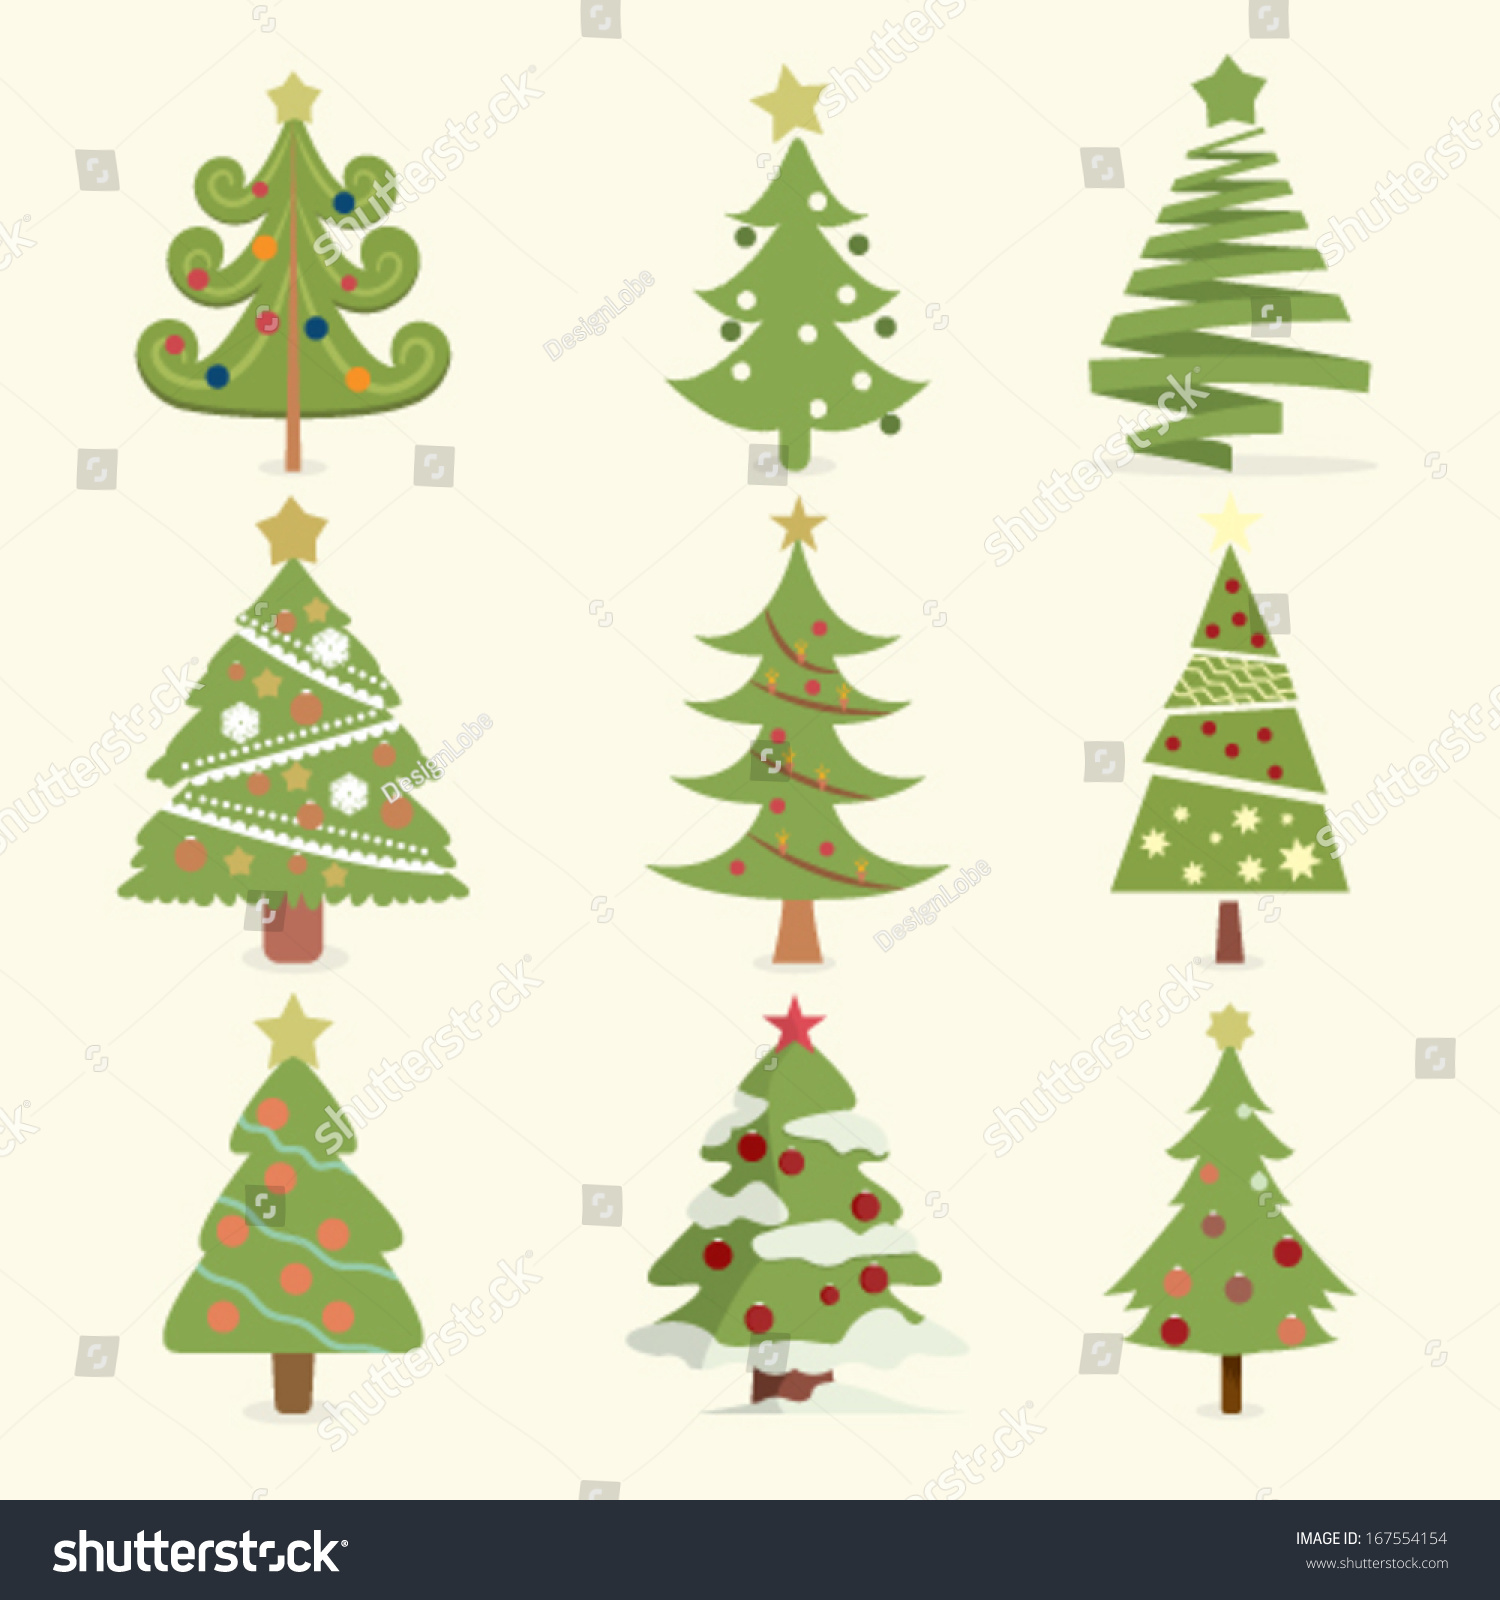 Set Christmas Trees Different Styles Stock Vector 167554154 ...